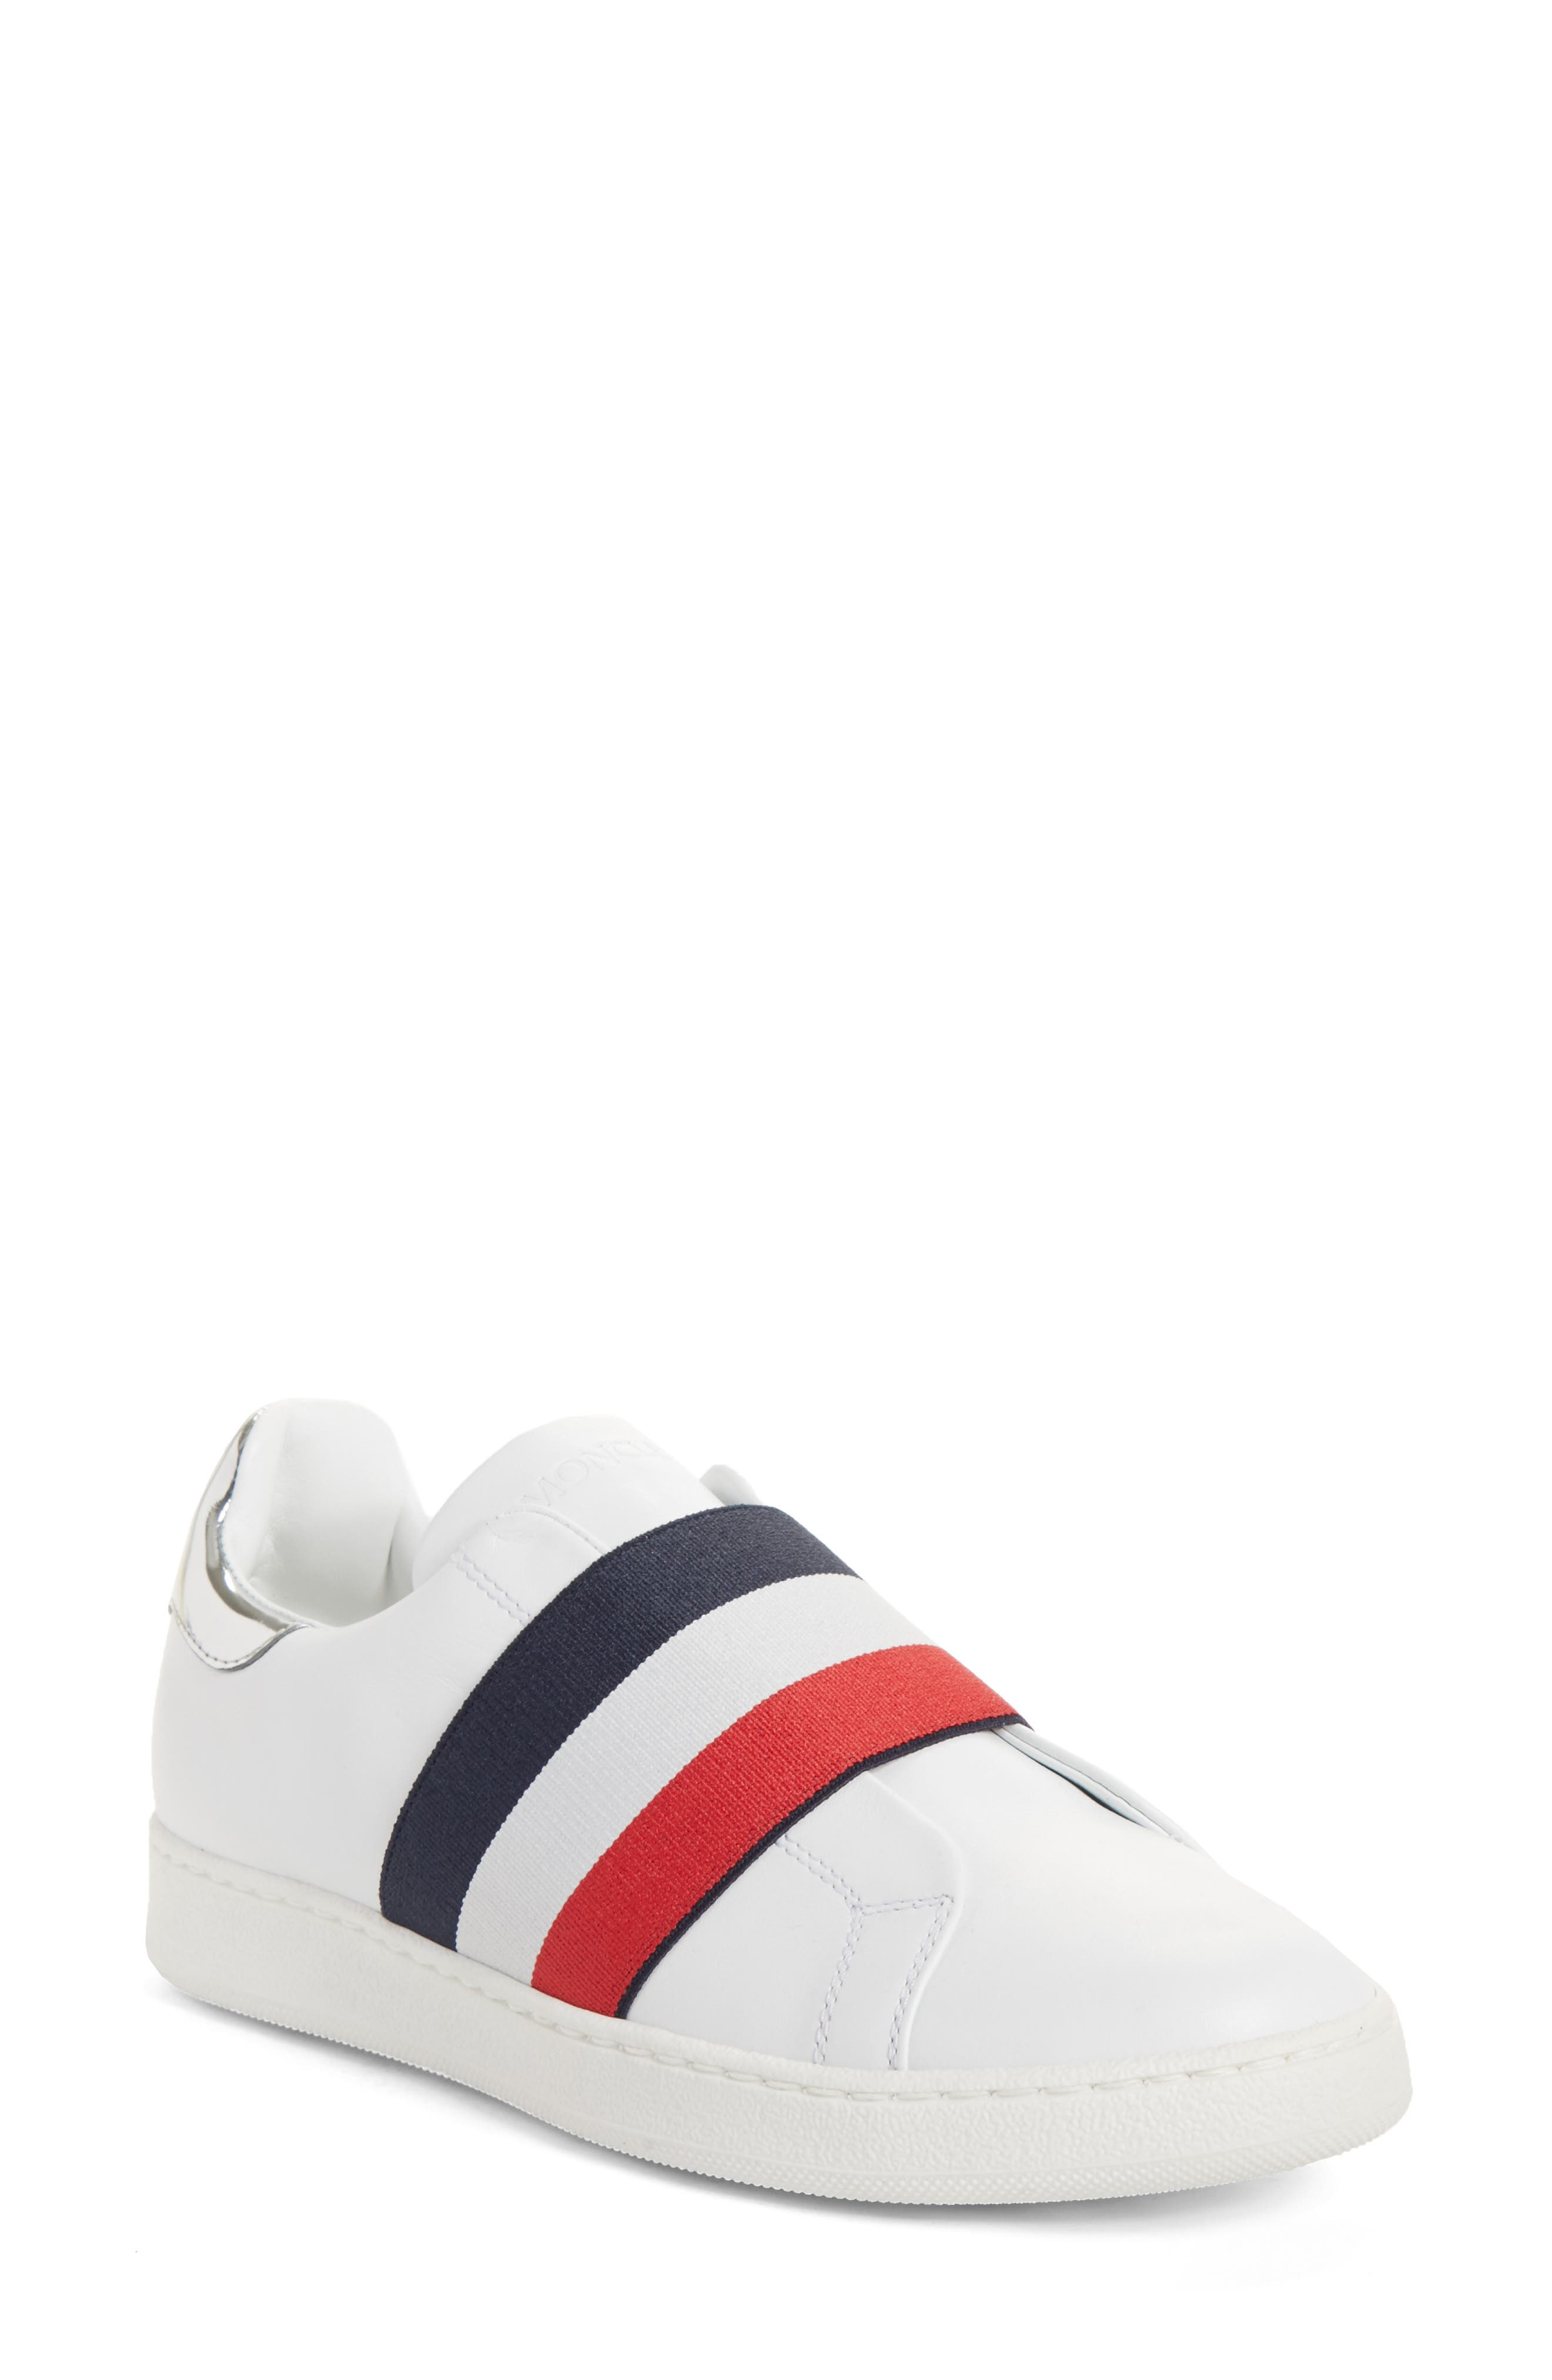 Alternate Image 1 Selected - Moncler Alizee Low Top Sneaker (Women)